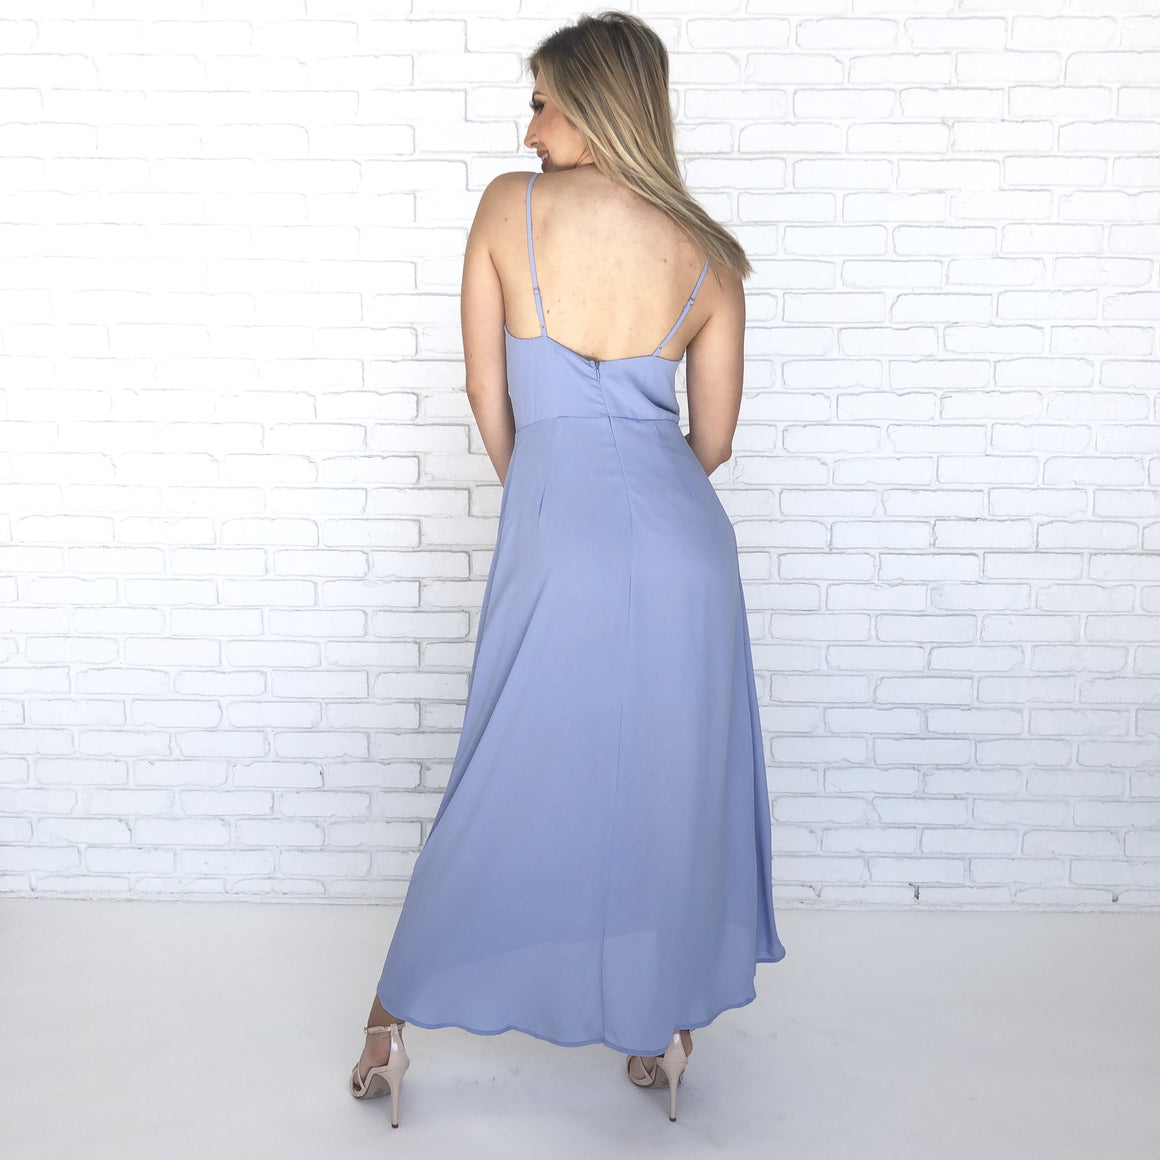 Moonlight Lover Midi Dress in Baby Blue - Dainty Hooligan